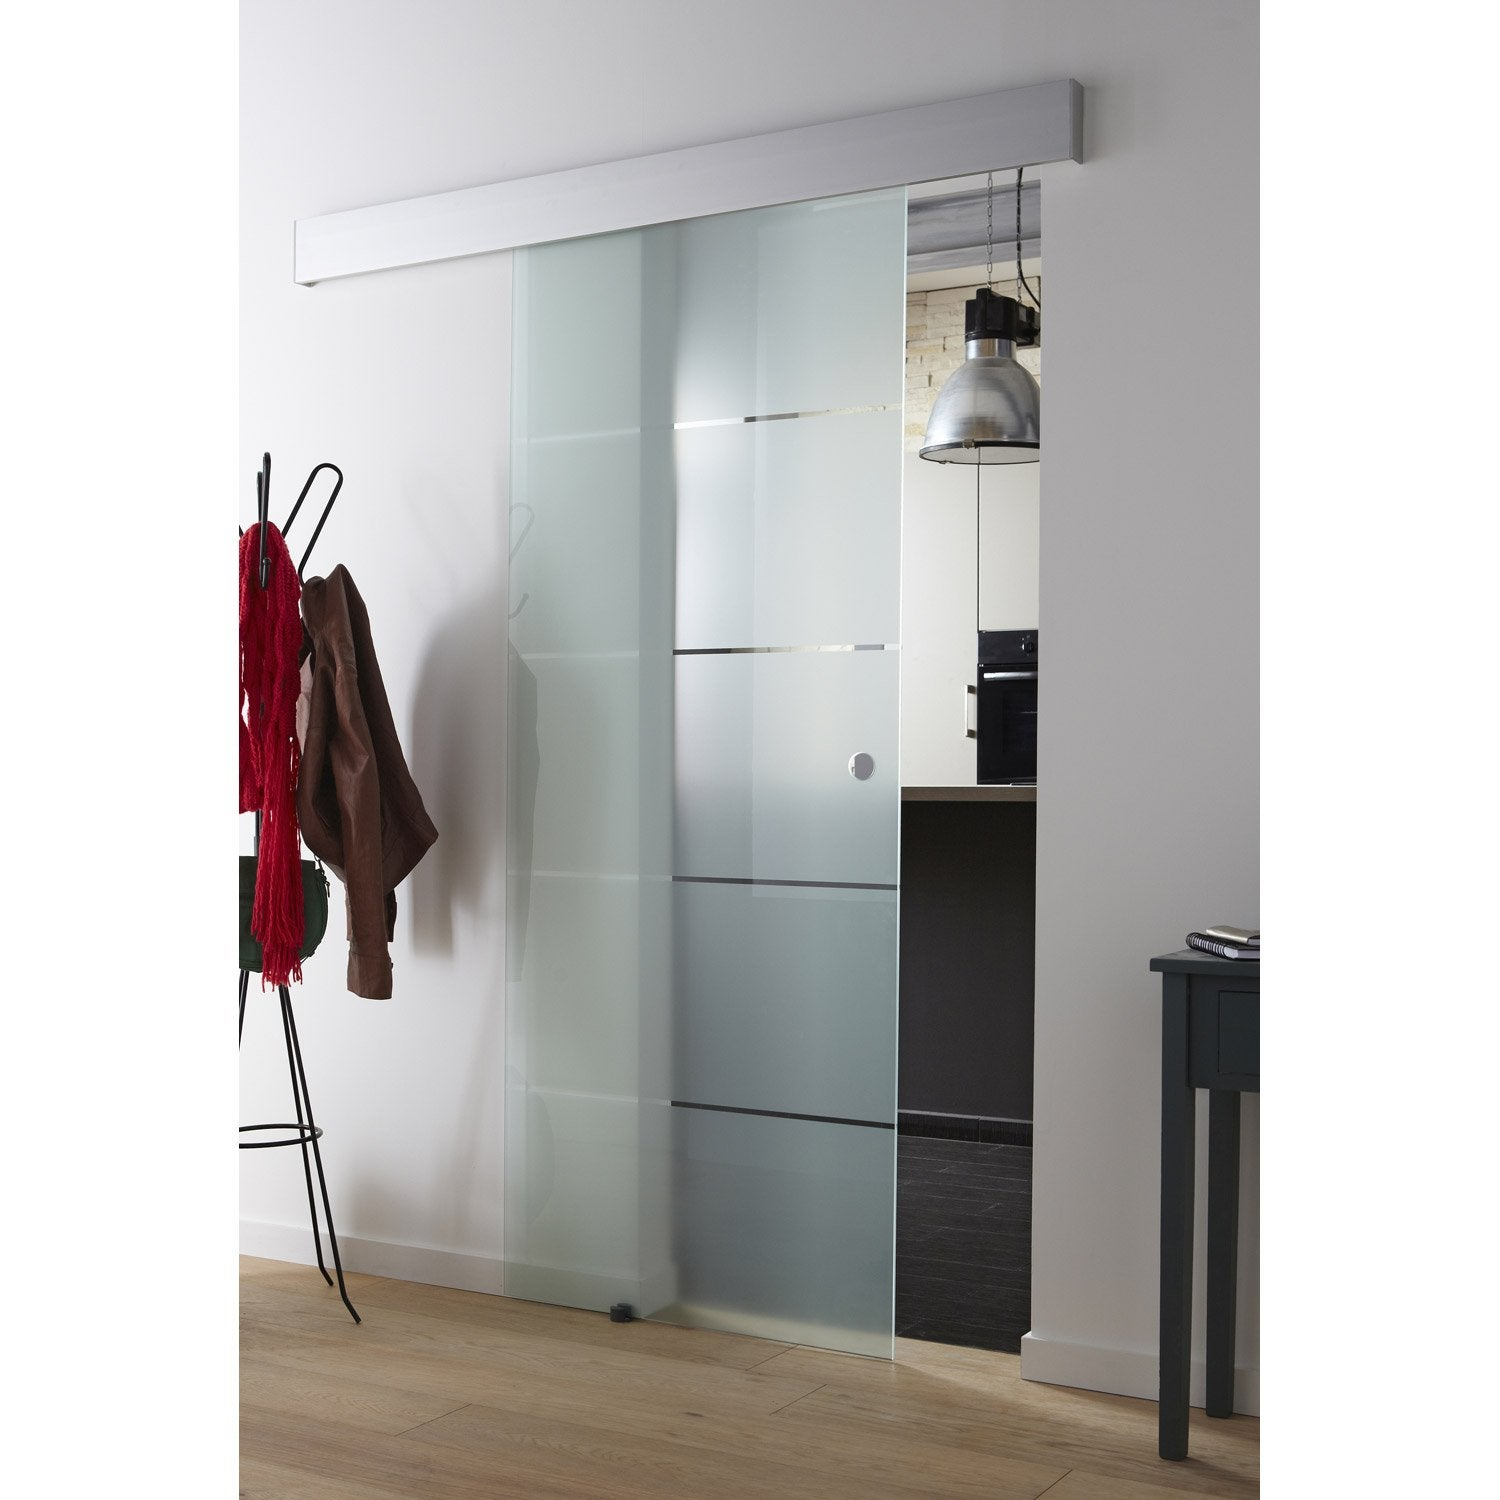 Porte coulissante verre tremp floride artens 204 x 73 cm for Porte interno leroy merlin